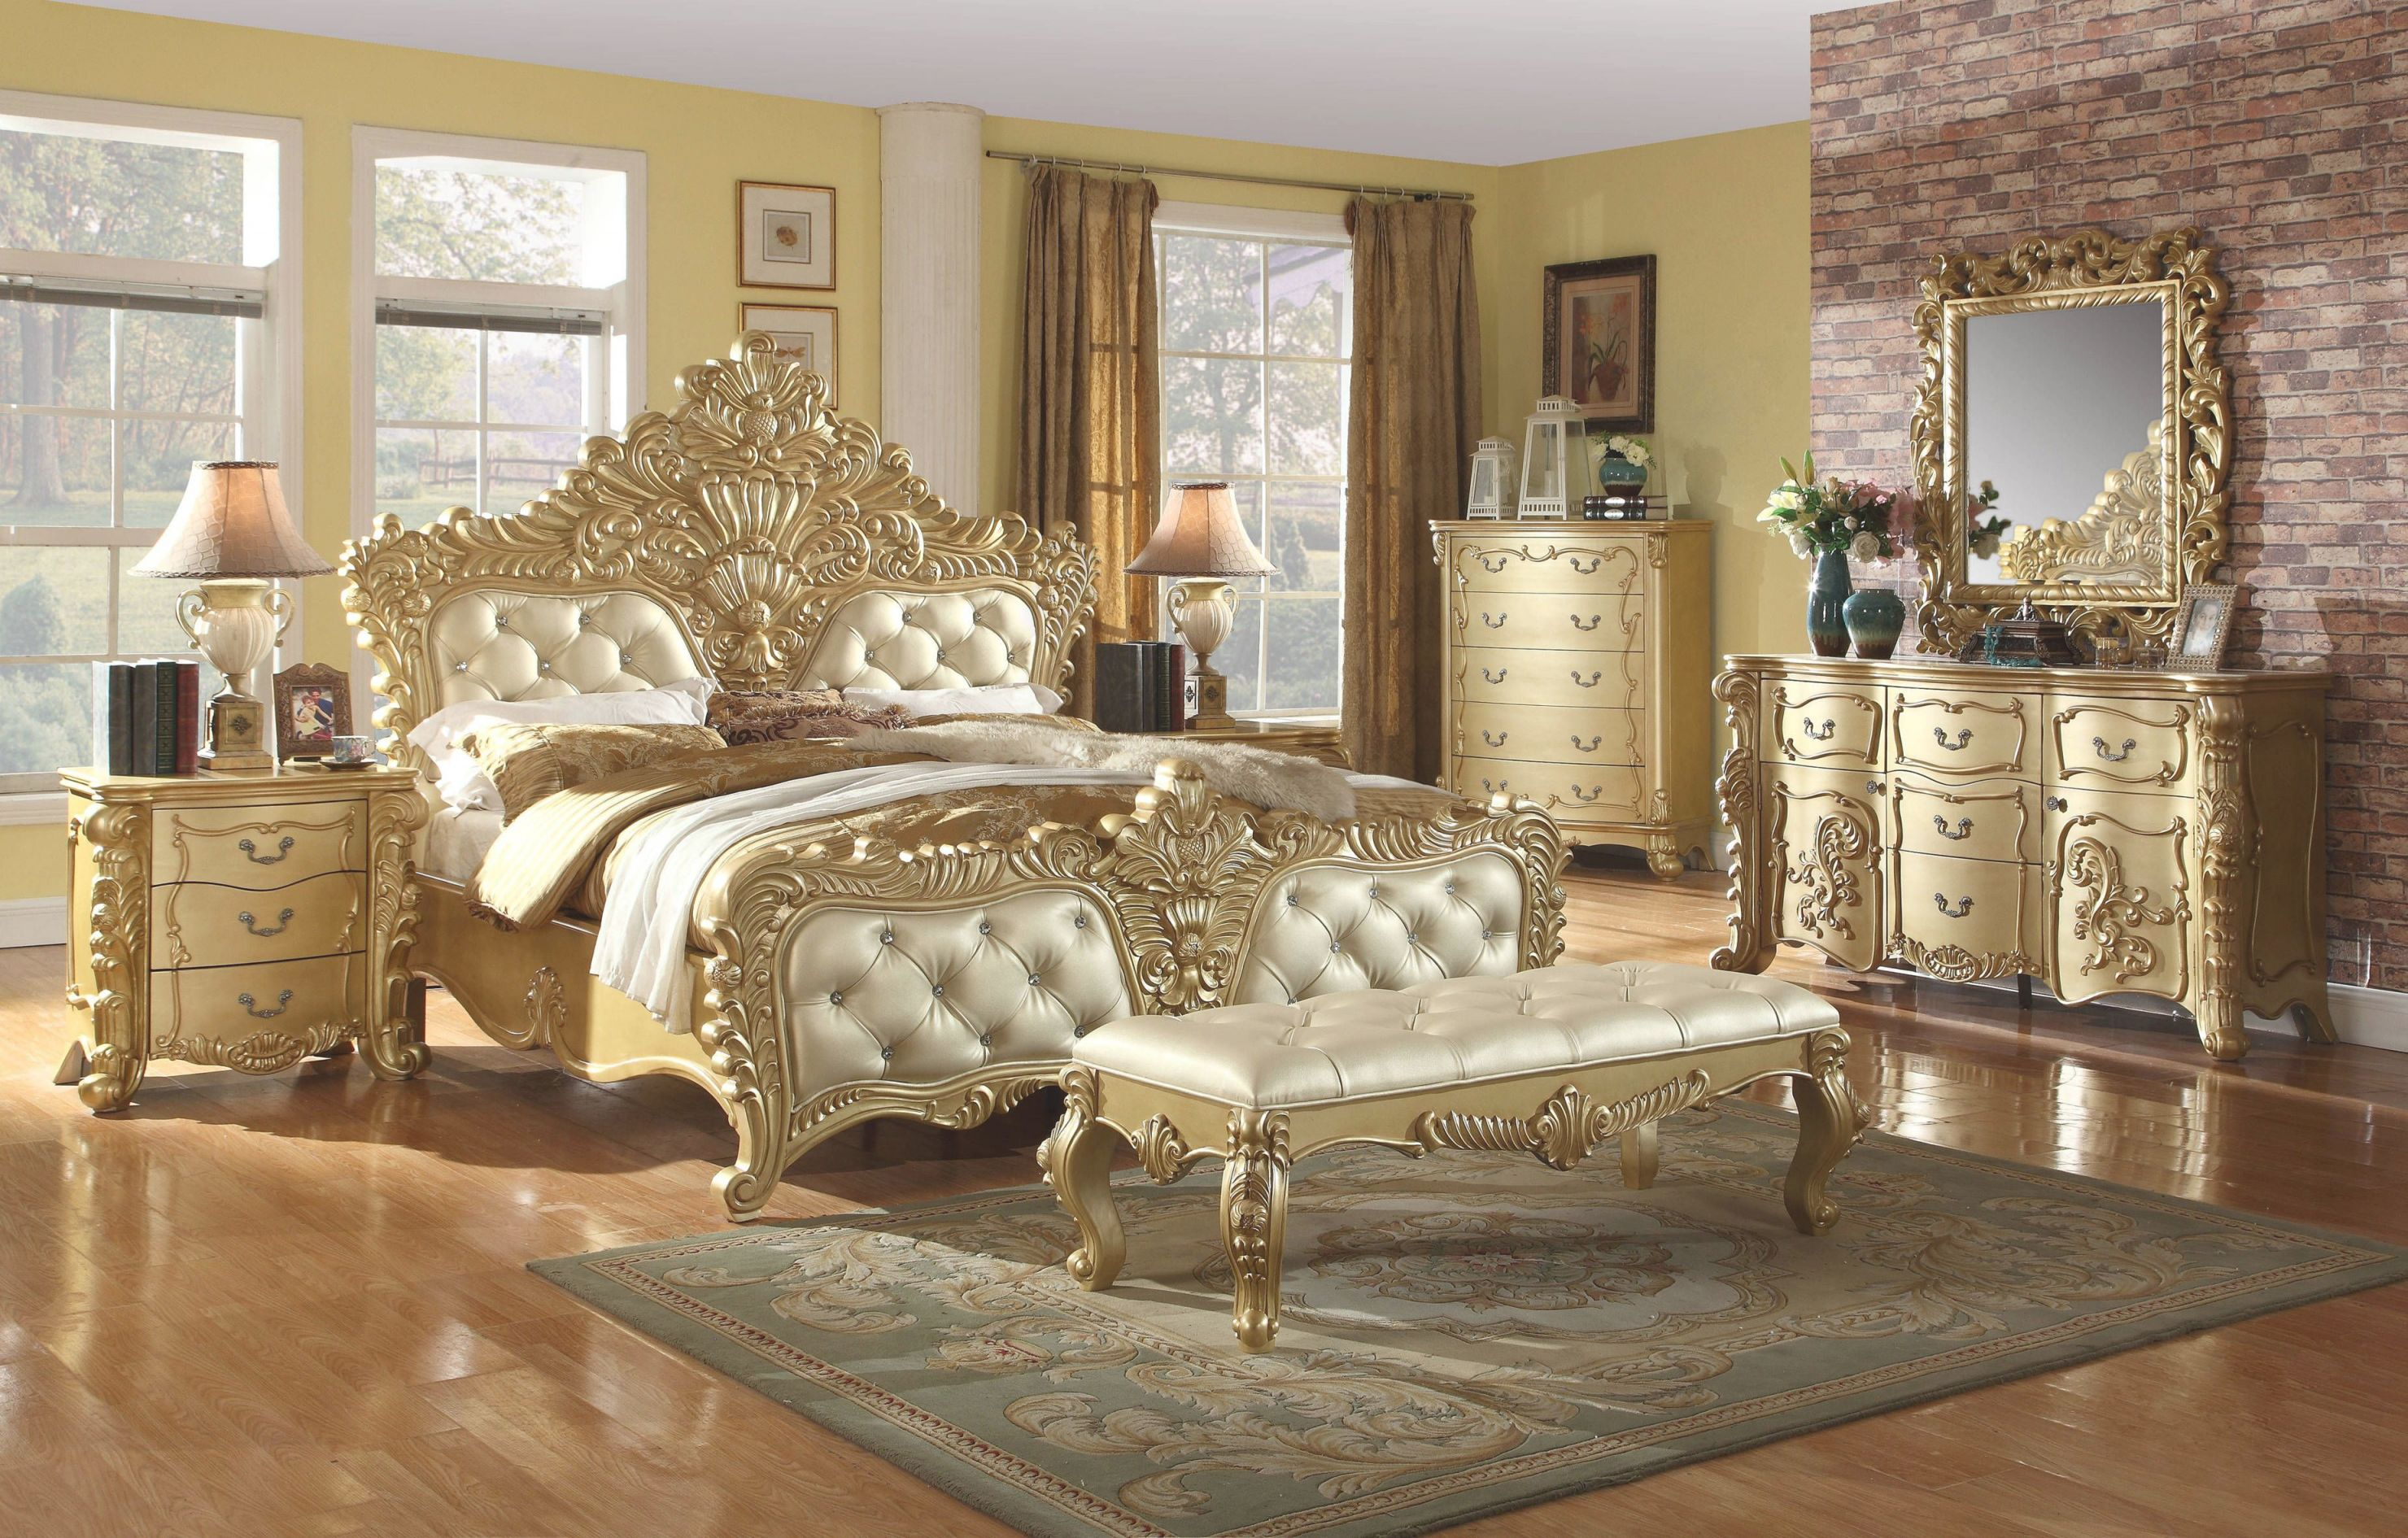 Likable Gold Bedroom Set Decor Queen And Yellow Fixtures Regarding Fresh Gold Bedroom Furniture Sets Awesome Decors